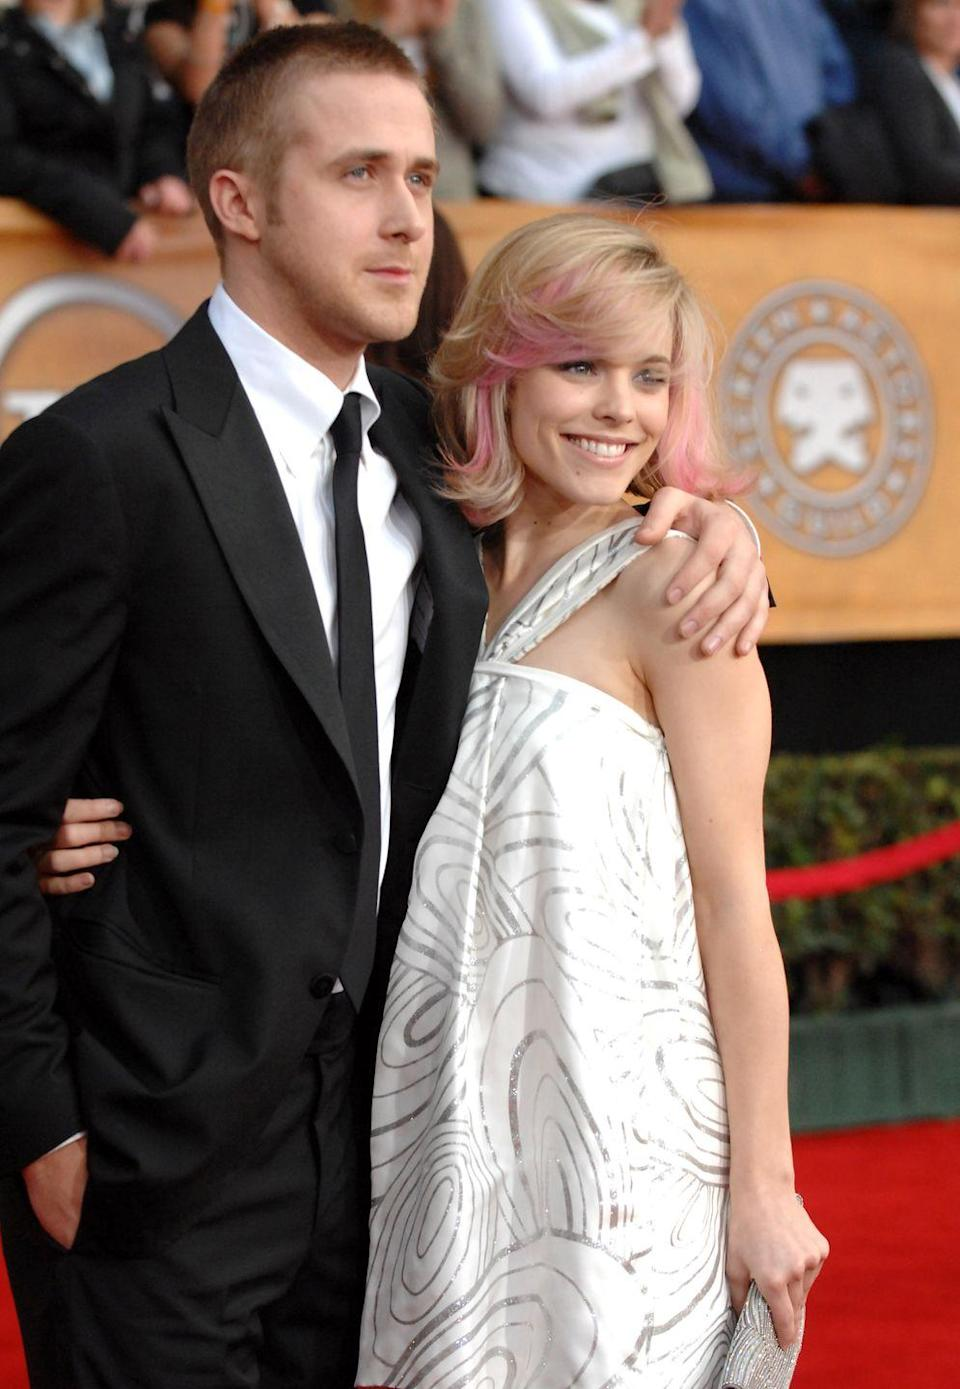 """<p>This couple started dating in 2004 after they played Noah and Allie in <em>The Notebook</em> and broke things off in 2007. In November 2013, they <a href=""""http://www.refinery29.com/2013/11/57503/ryan-gosling-rachel-mcadams-dating"""" rel=""""nofollow noopener"""" target=""""_blank"""" data-ylk=""""slk:sparked rumors again"""" class=""""link rapid-noclick-resp"""">sparked rumors again</a>, but they've both moved on now. Gosling shares two children with wife Eva Mendes, and McAdams has been married to Jamie Linden since 2016. </p>"""